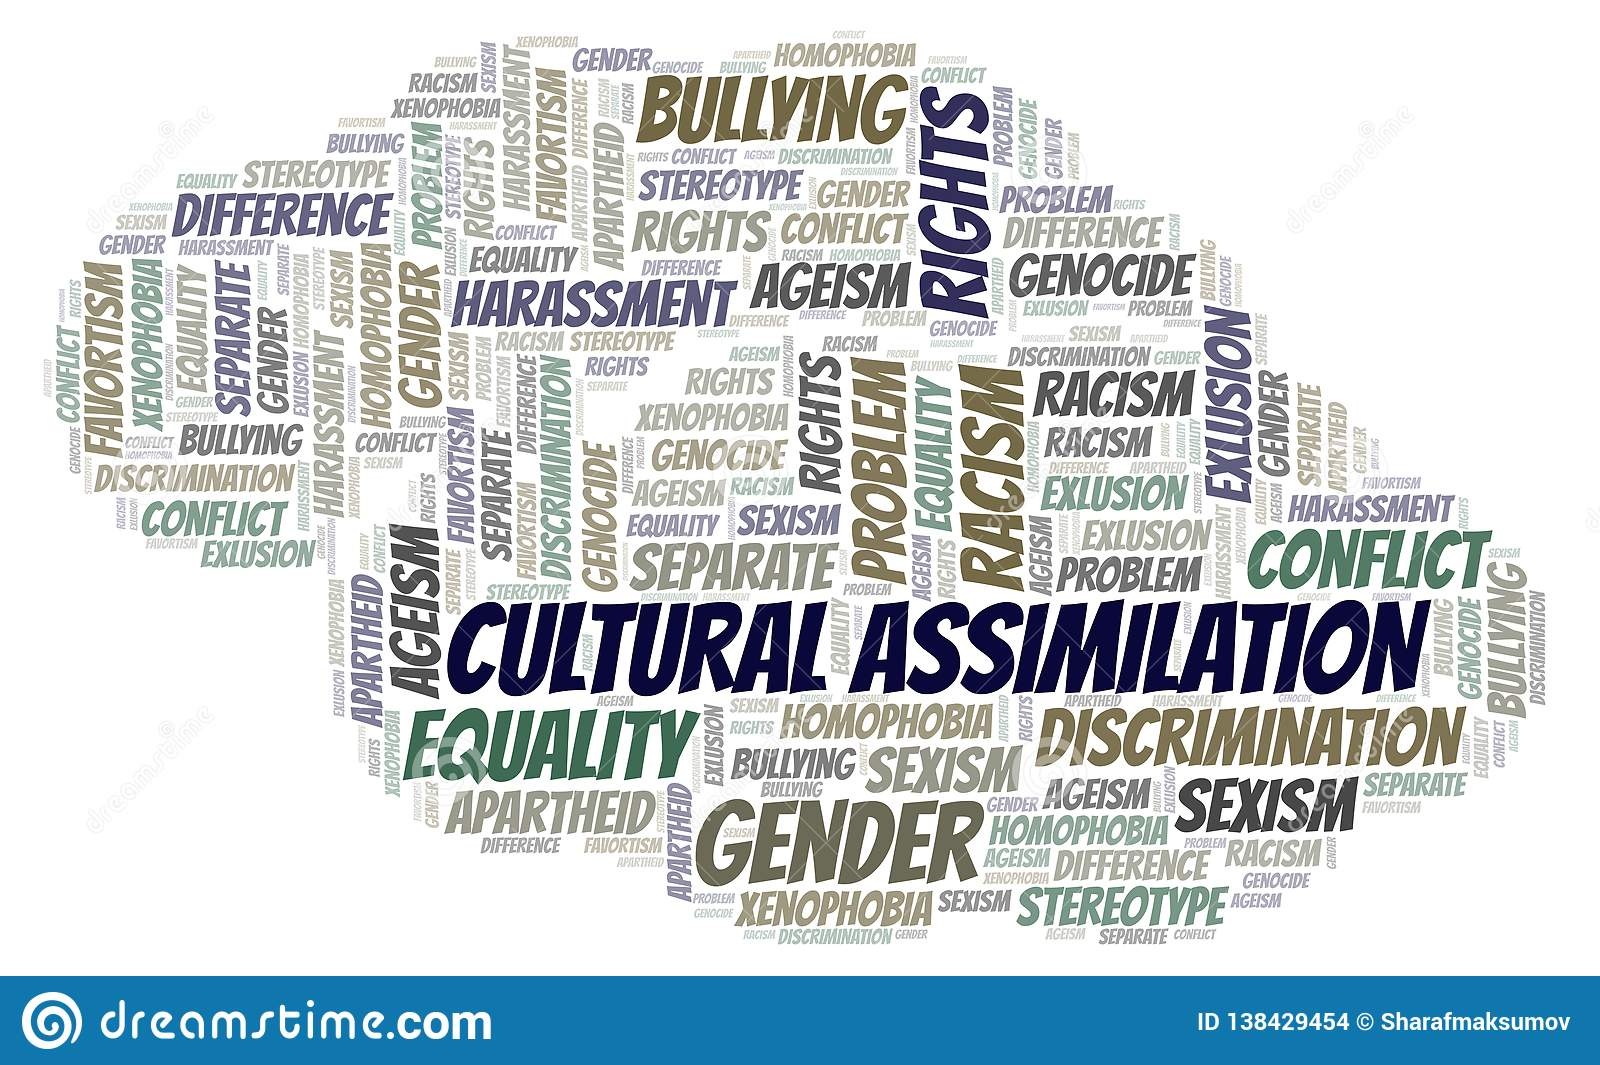 Cultural Assimilation - type of discrimination - word cloud